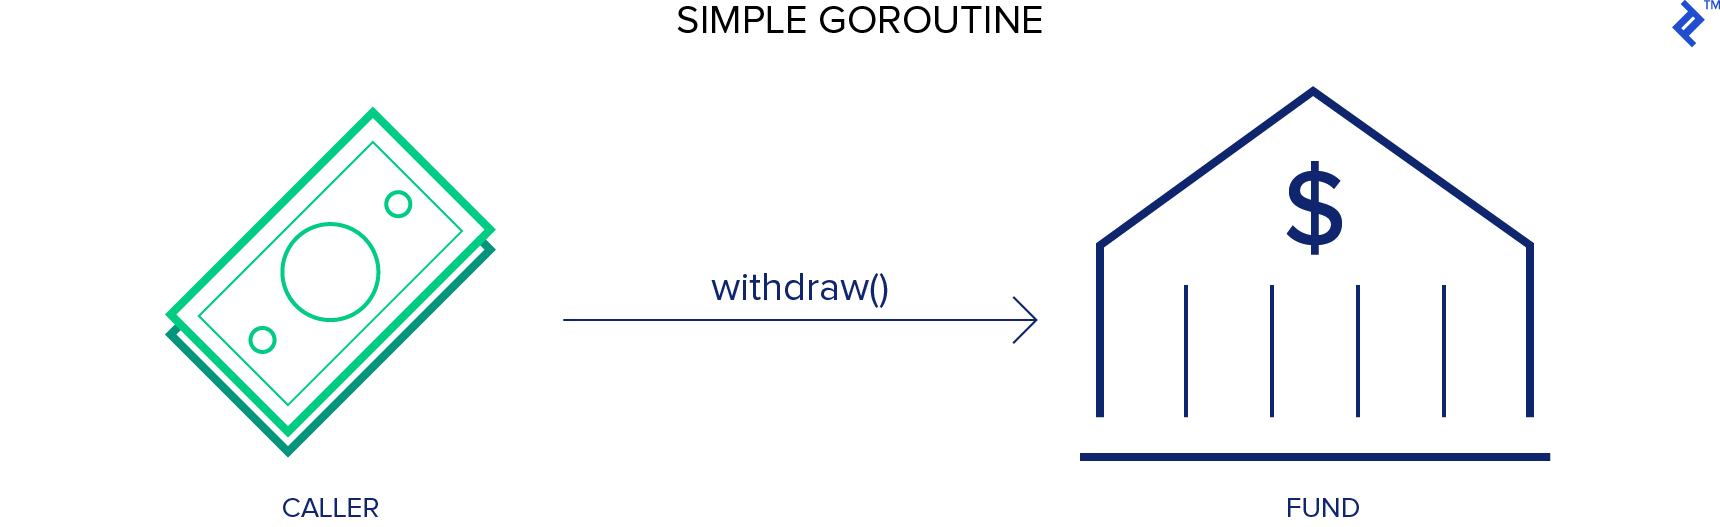 This graphic depicts a simple goroutine example using the Go programming language.